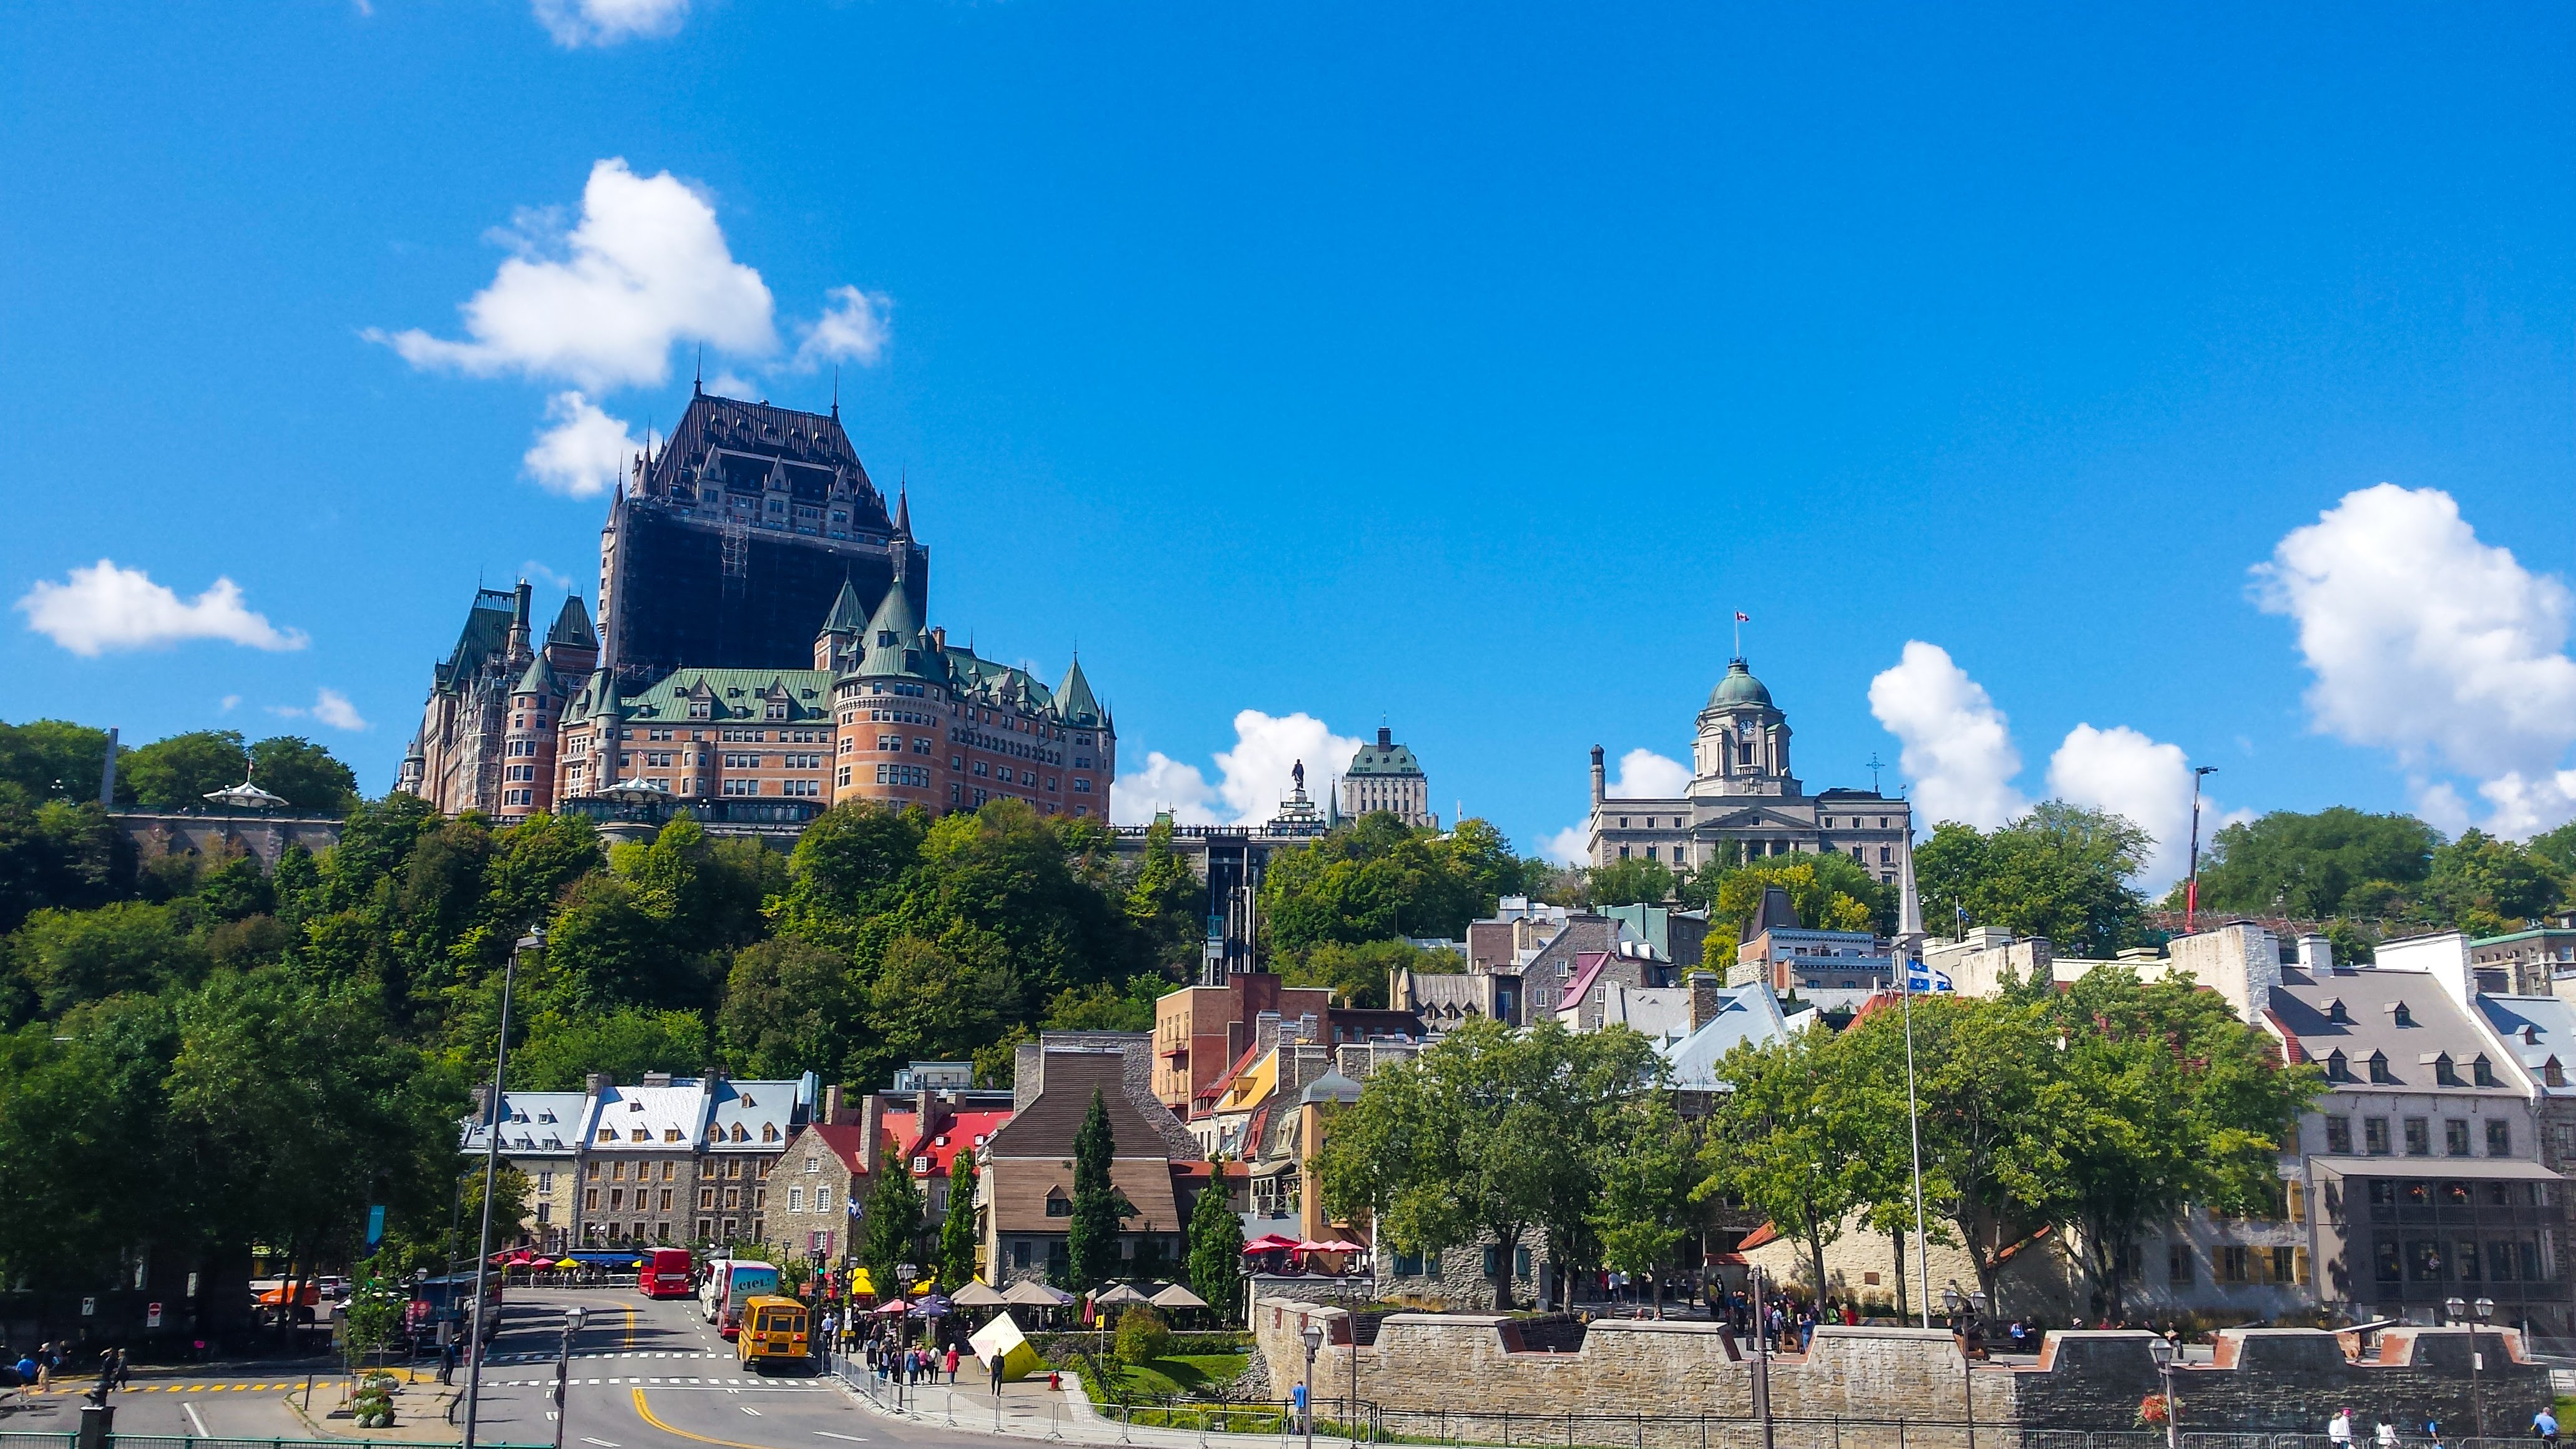 Canada Quebec City travel guide travel tips city guide things to do itinerary sightseeing highlights viewpoint ferry Levis port